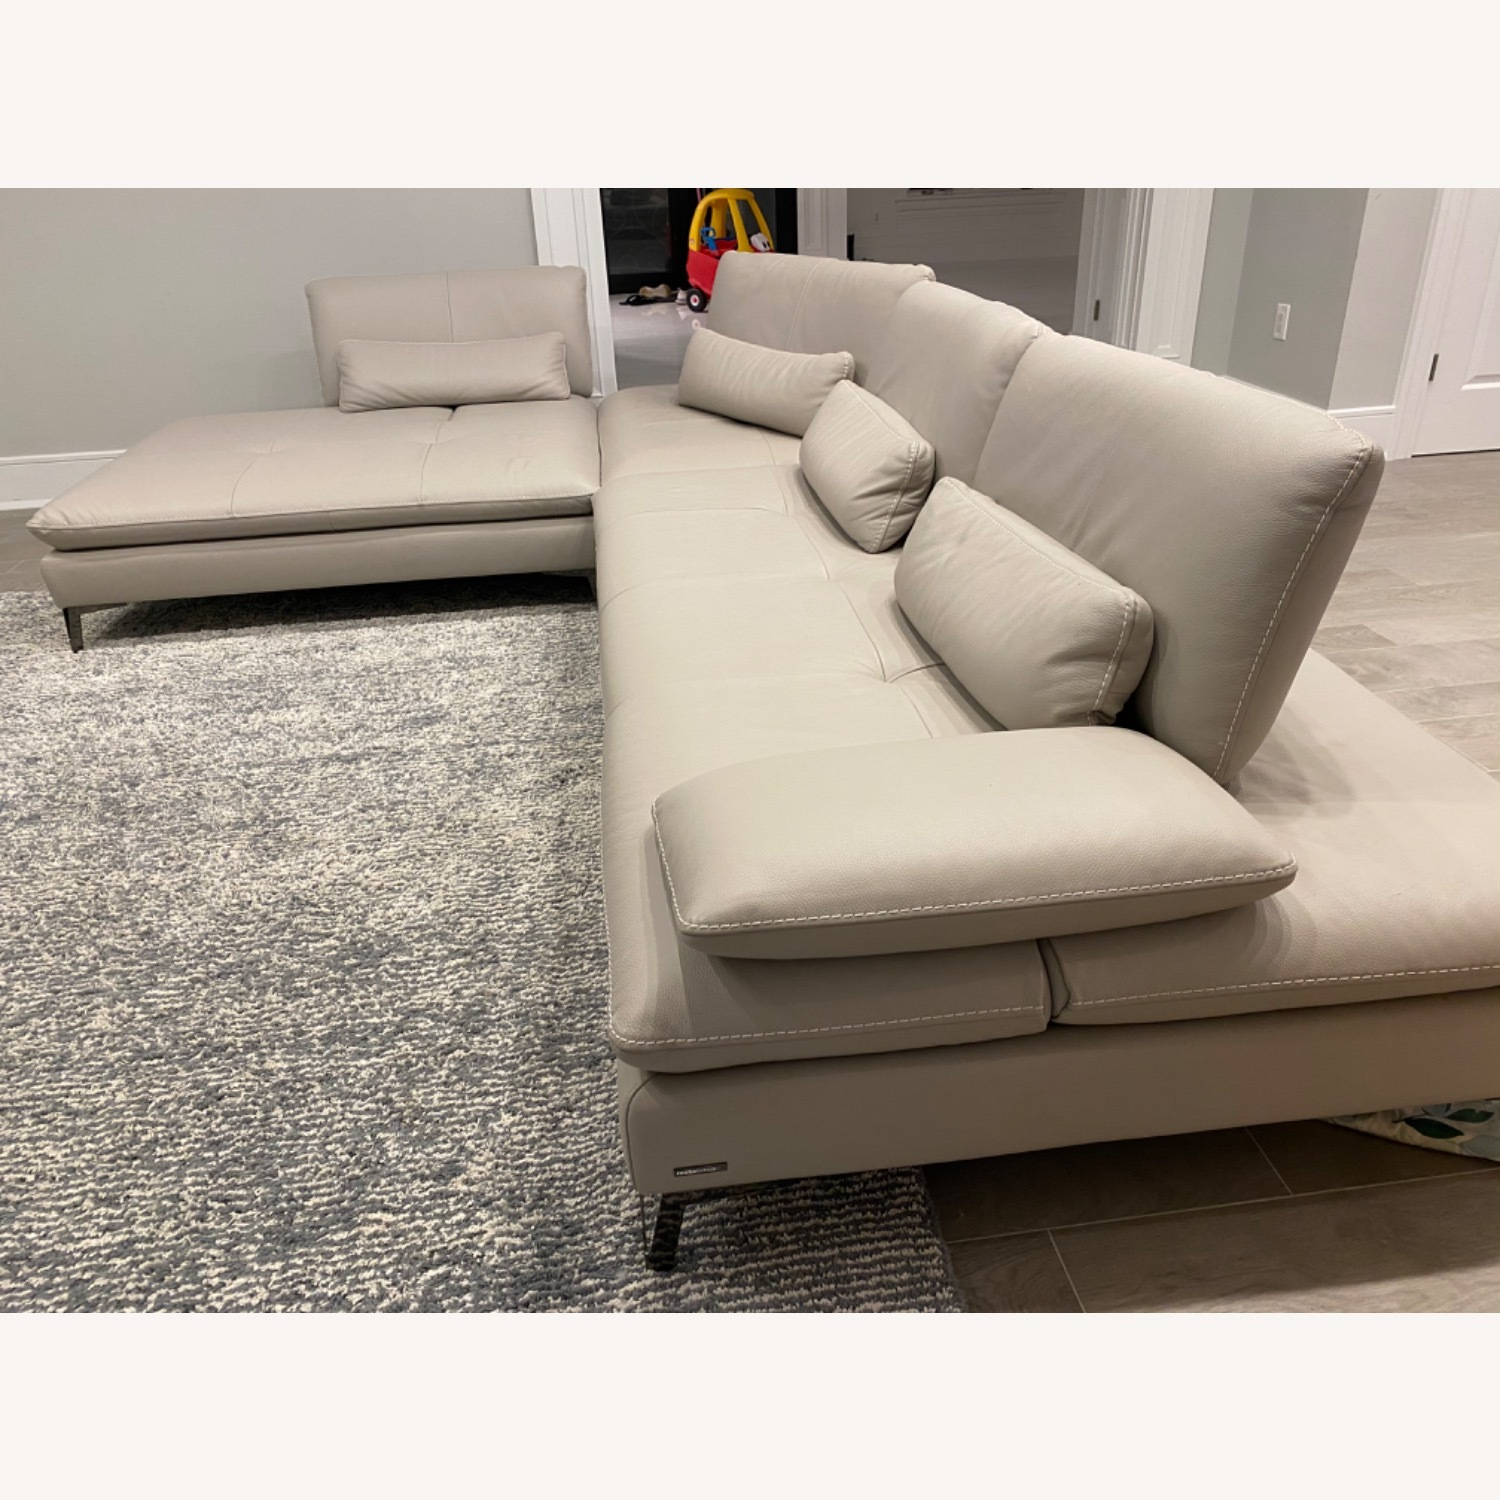 Roche Bobois Leather Sectional - image-5